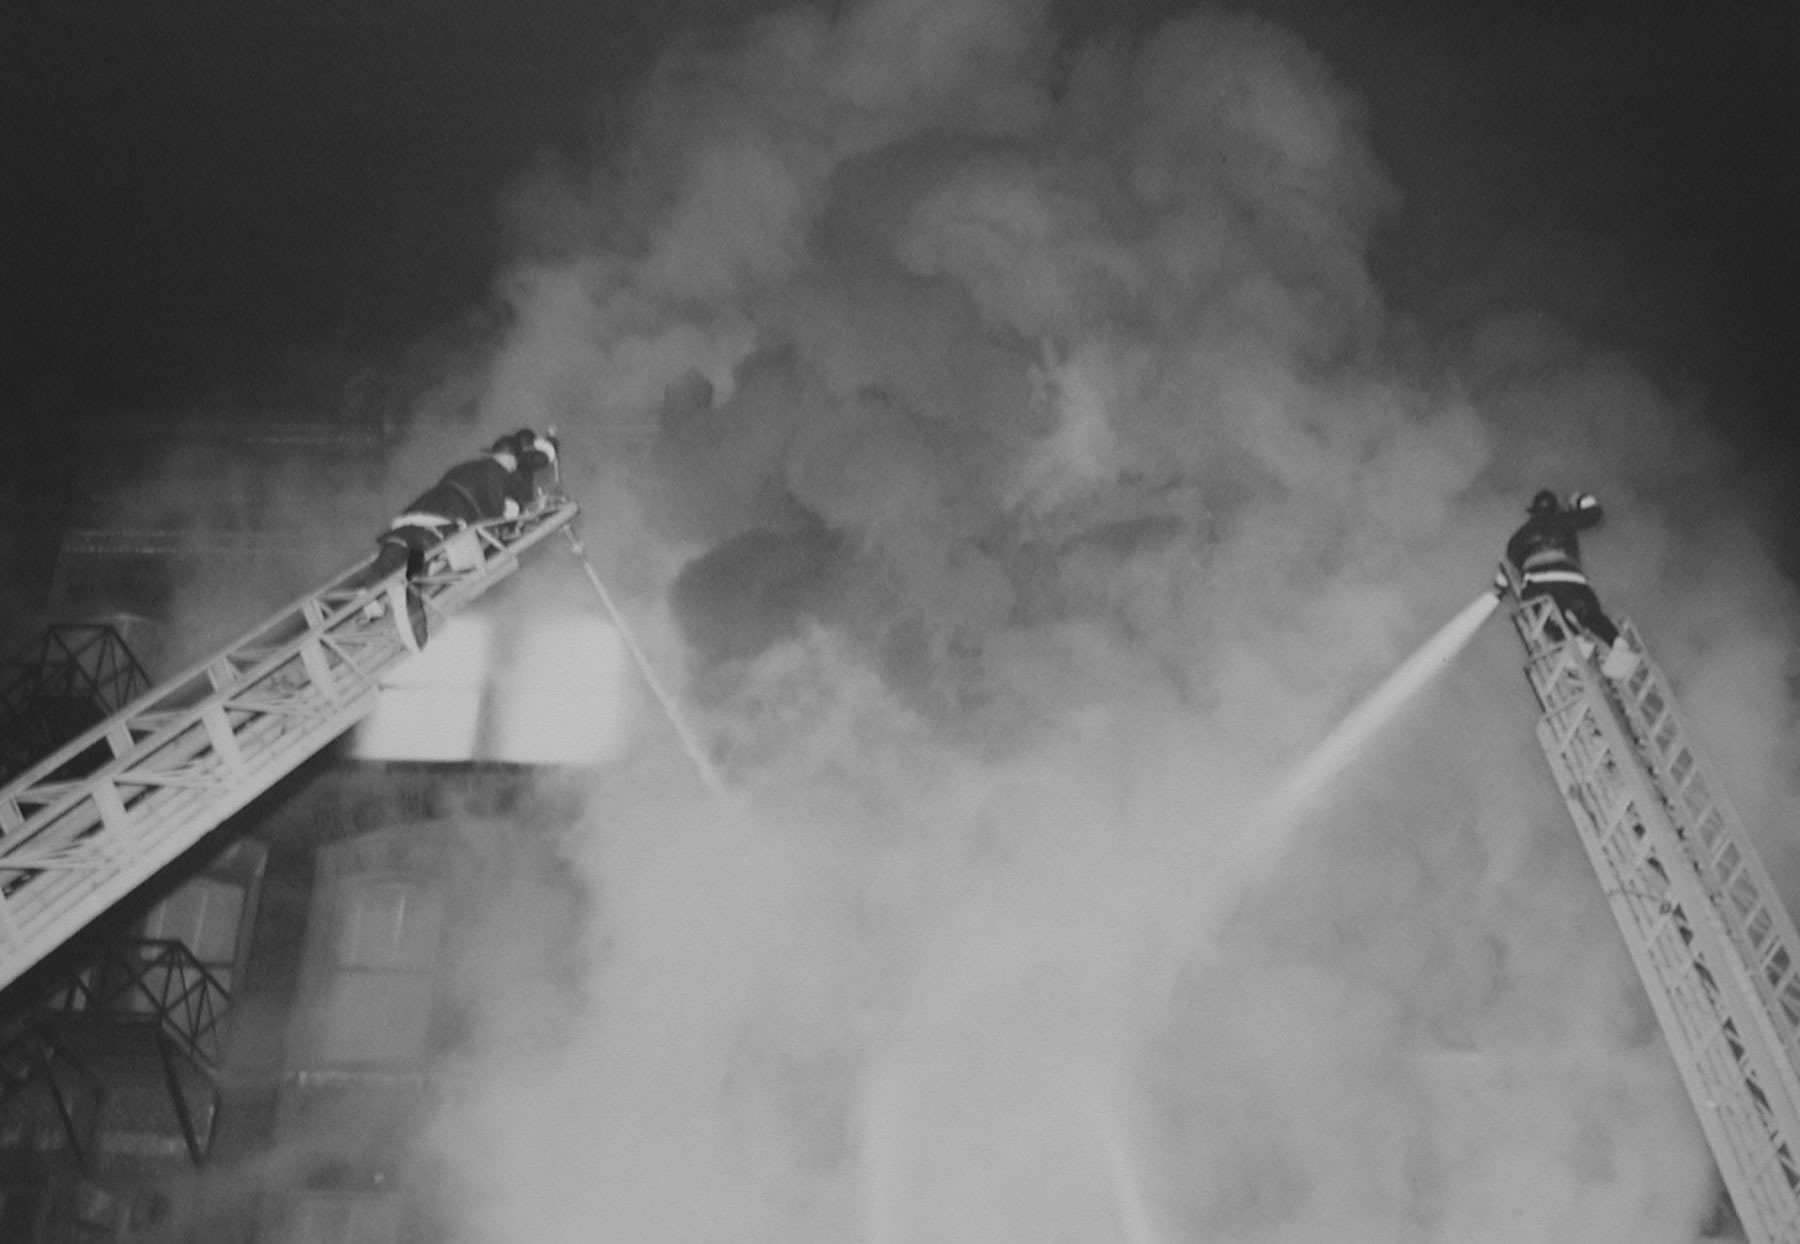 Two large aerial ladders set-up with as firefighter on each spraying water on the very large fire through the smoke.